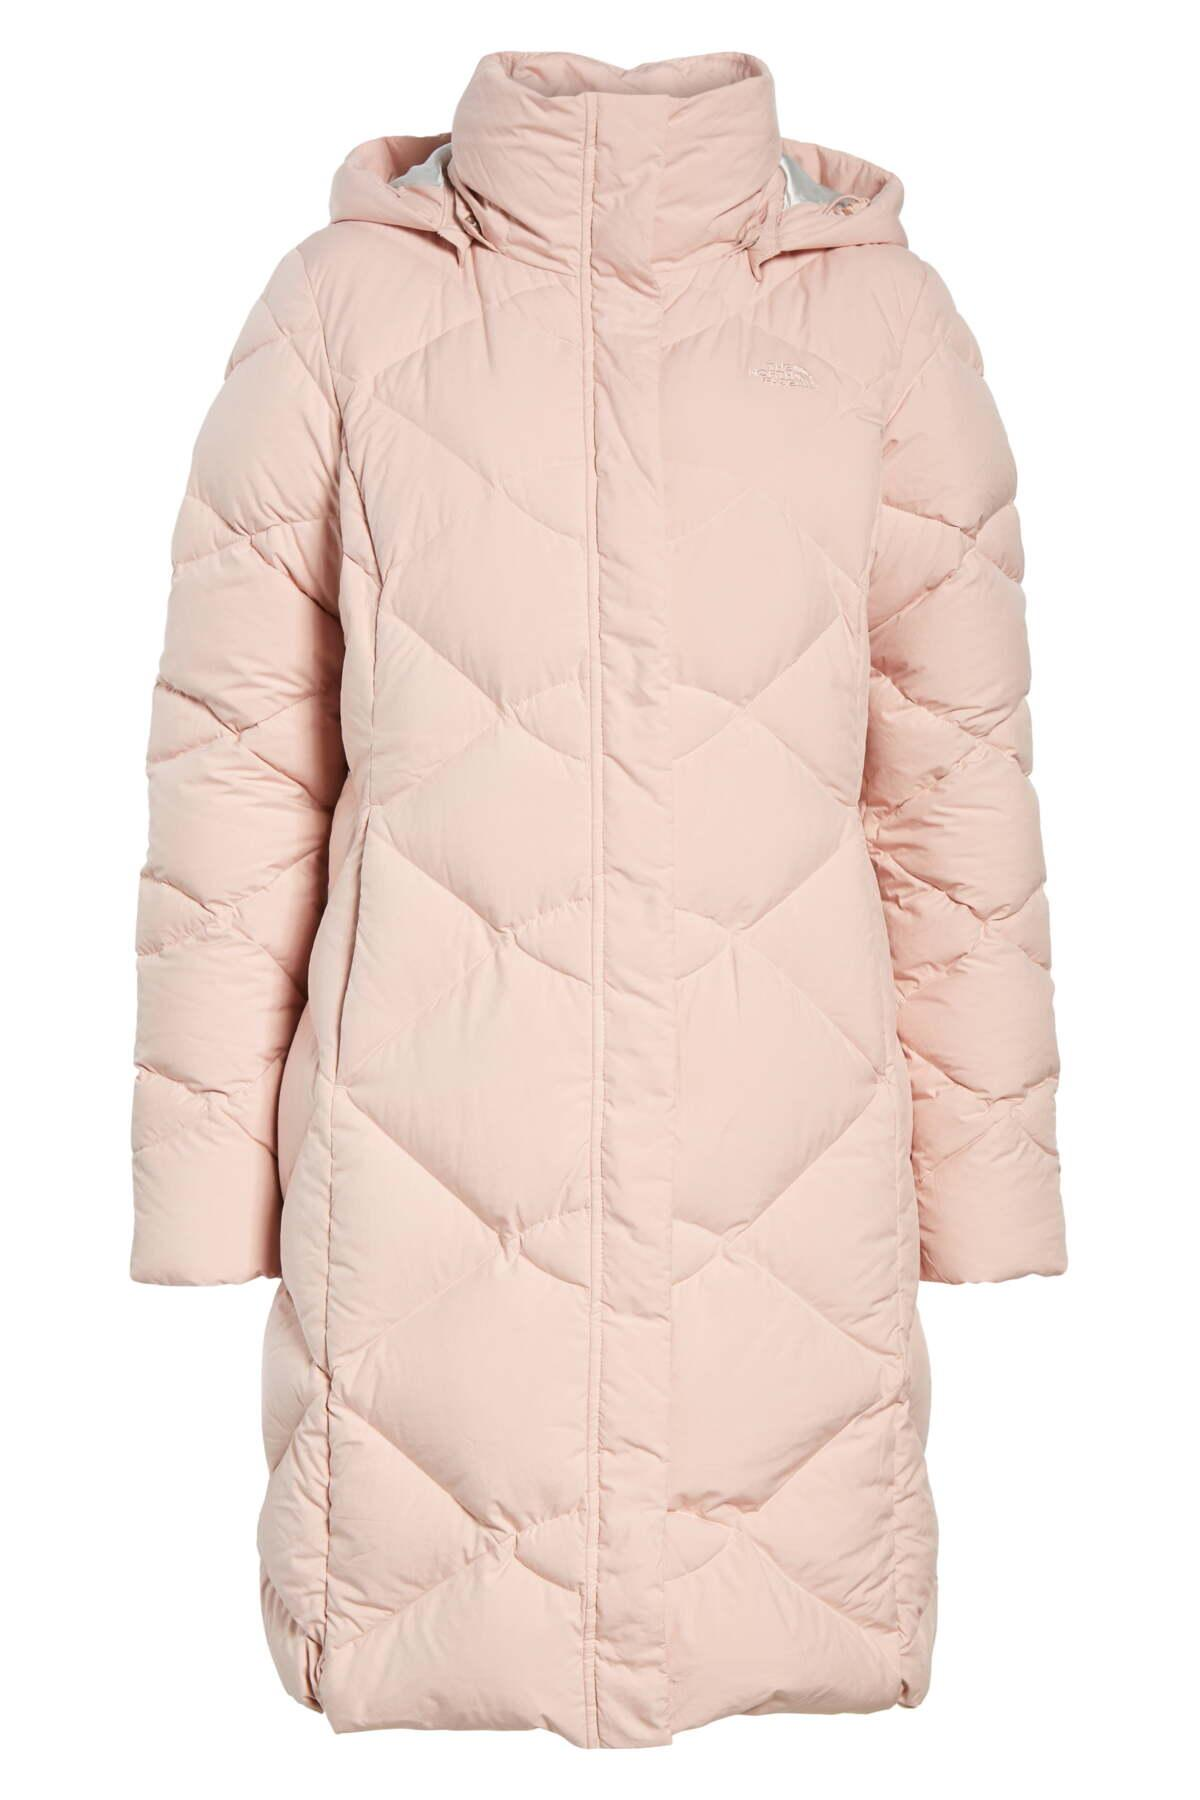 a3b48a704 The North Face Pink Miss Metro Ii Water Repellent 550 Fill Power Down  Hooded Parka